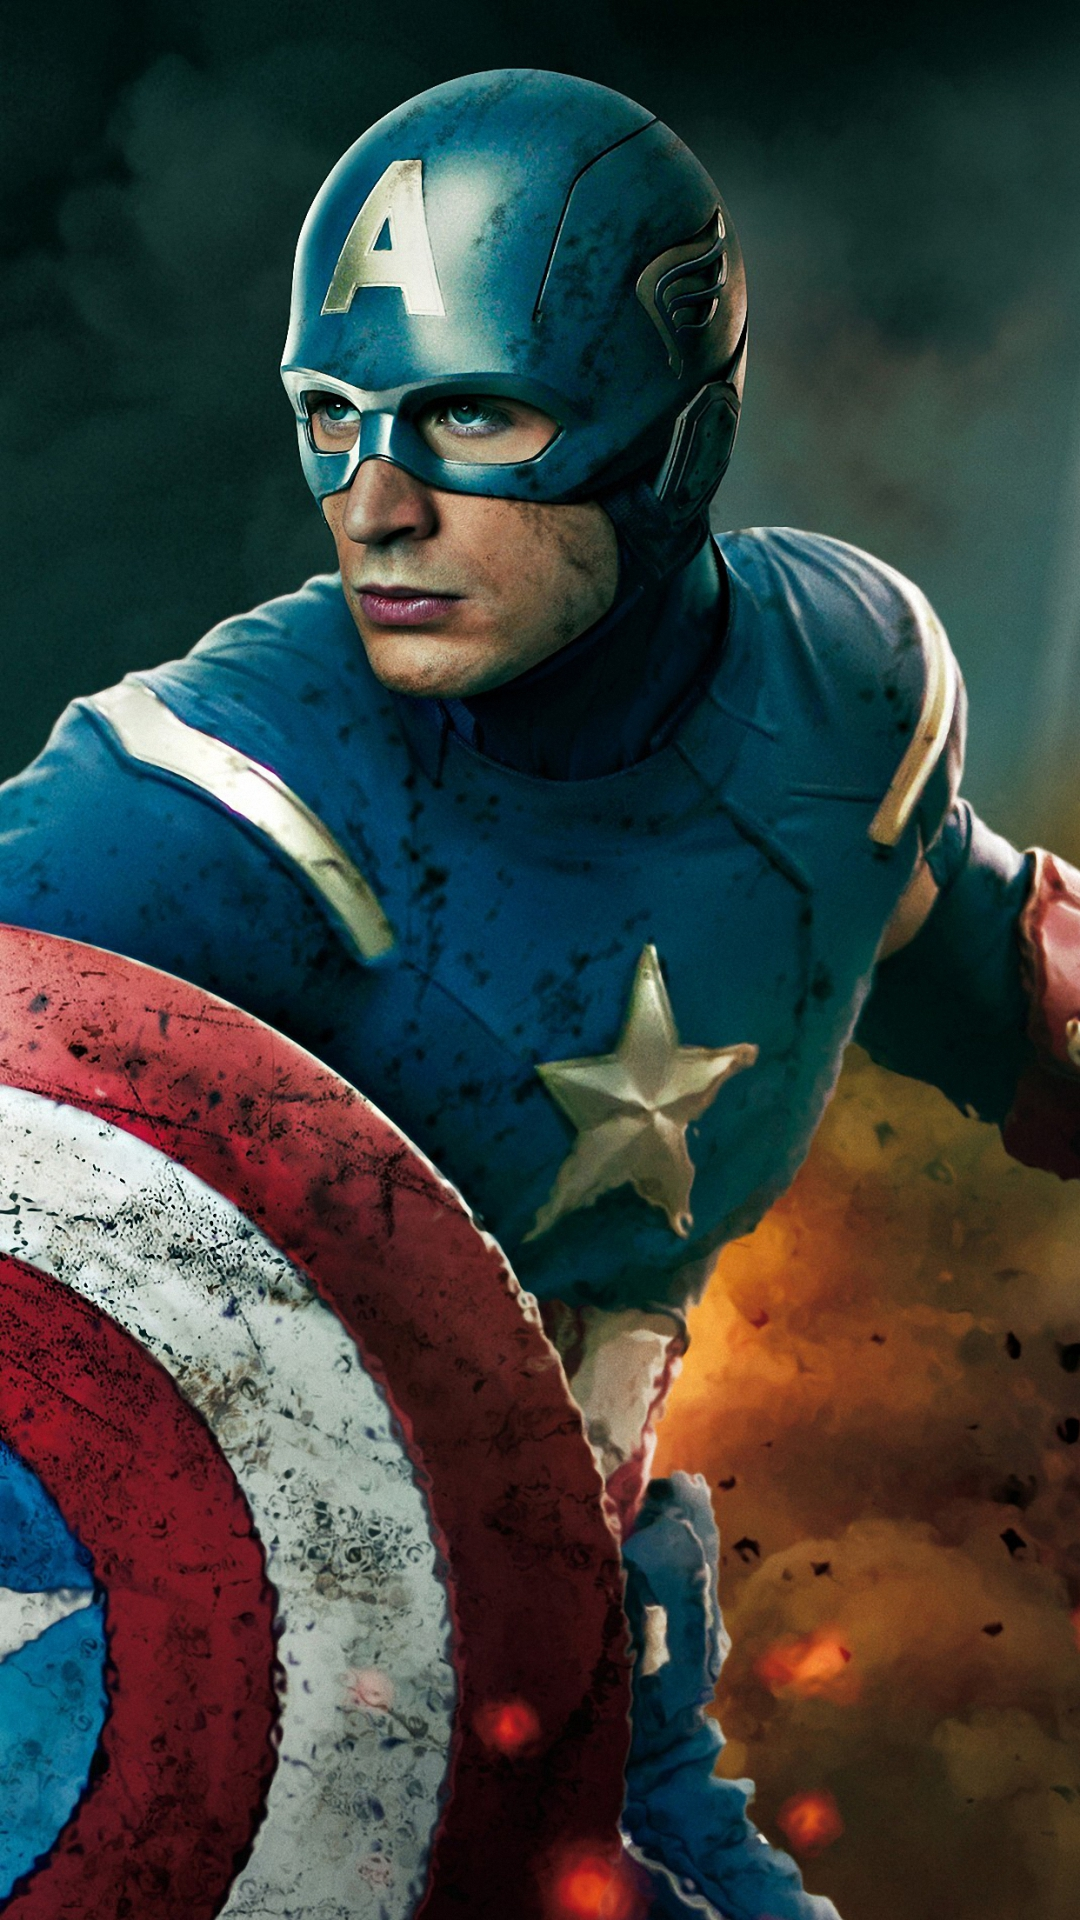 HD captain america wallpaper for iPhone 6 6s plus 1080x1920